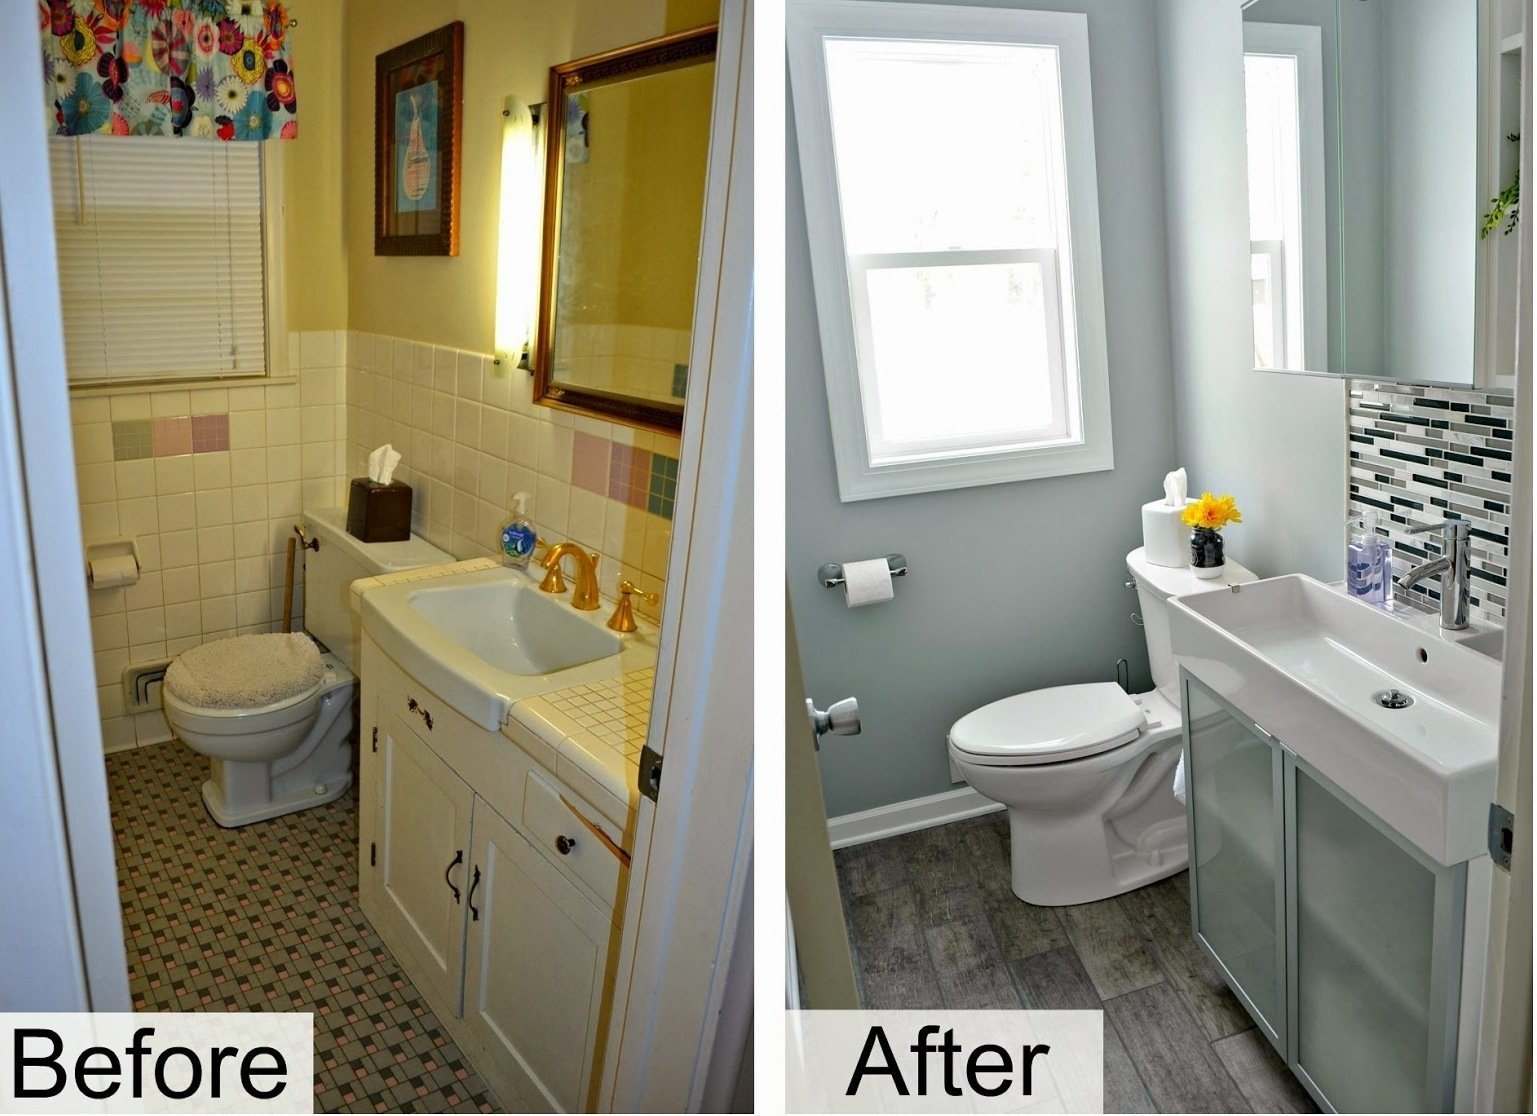 10 Beautiful Bathroom Remodeling Ideas On A Budget budget bathroom remodel tire driveeasy co 1 2021